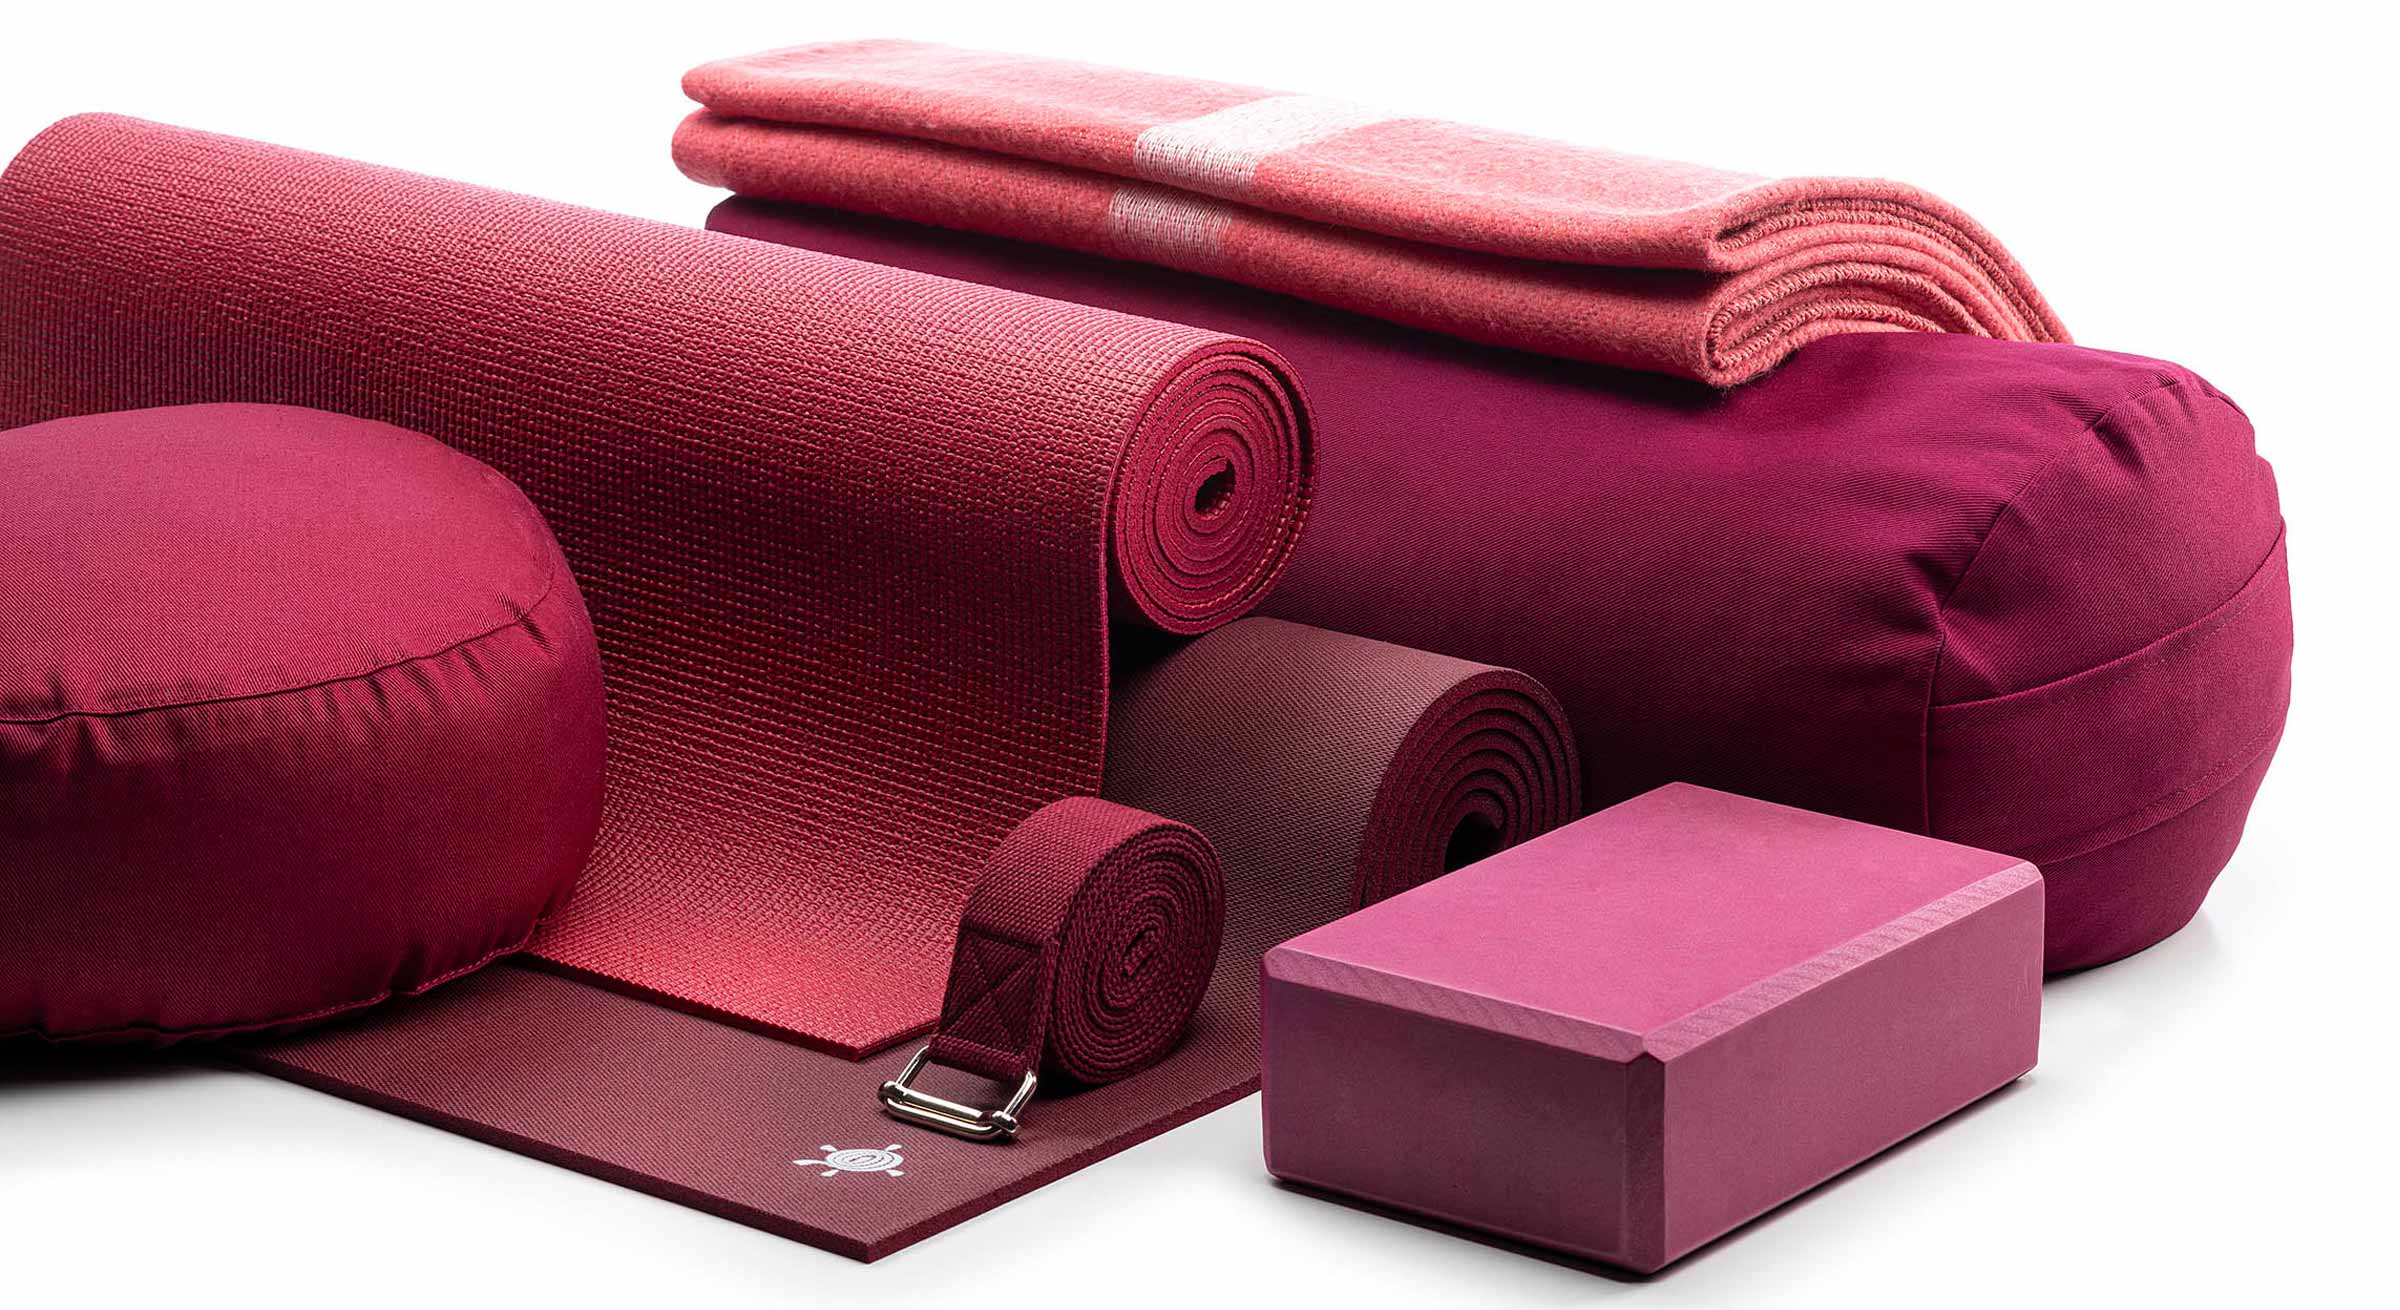 Kurma Yoga Products Red